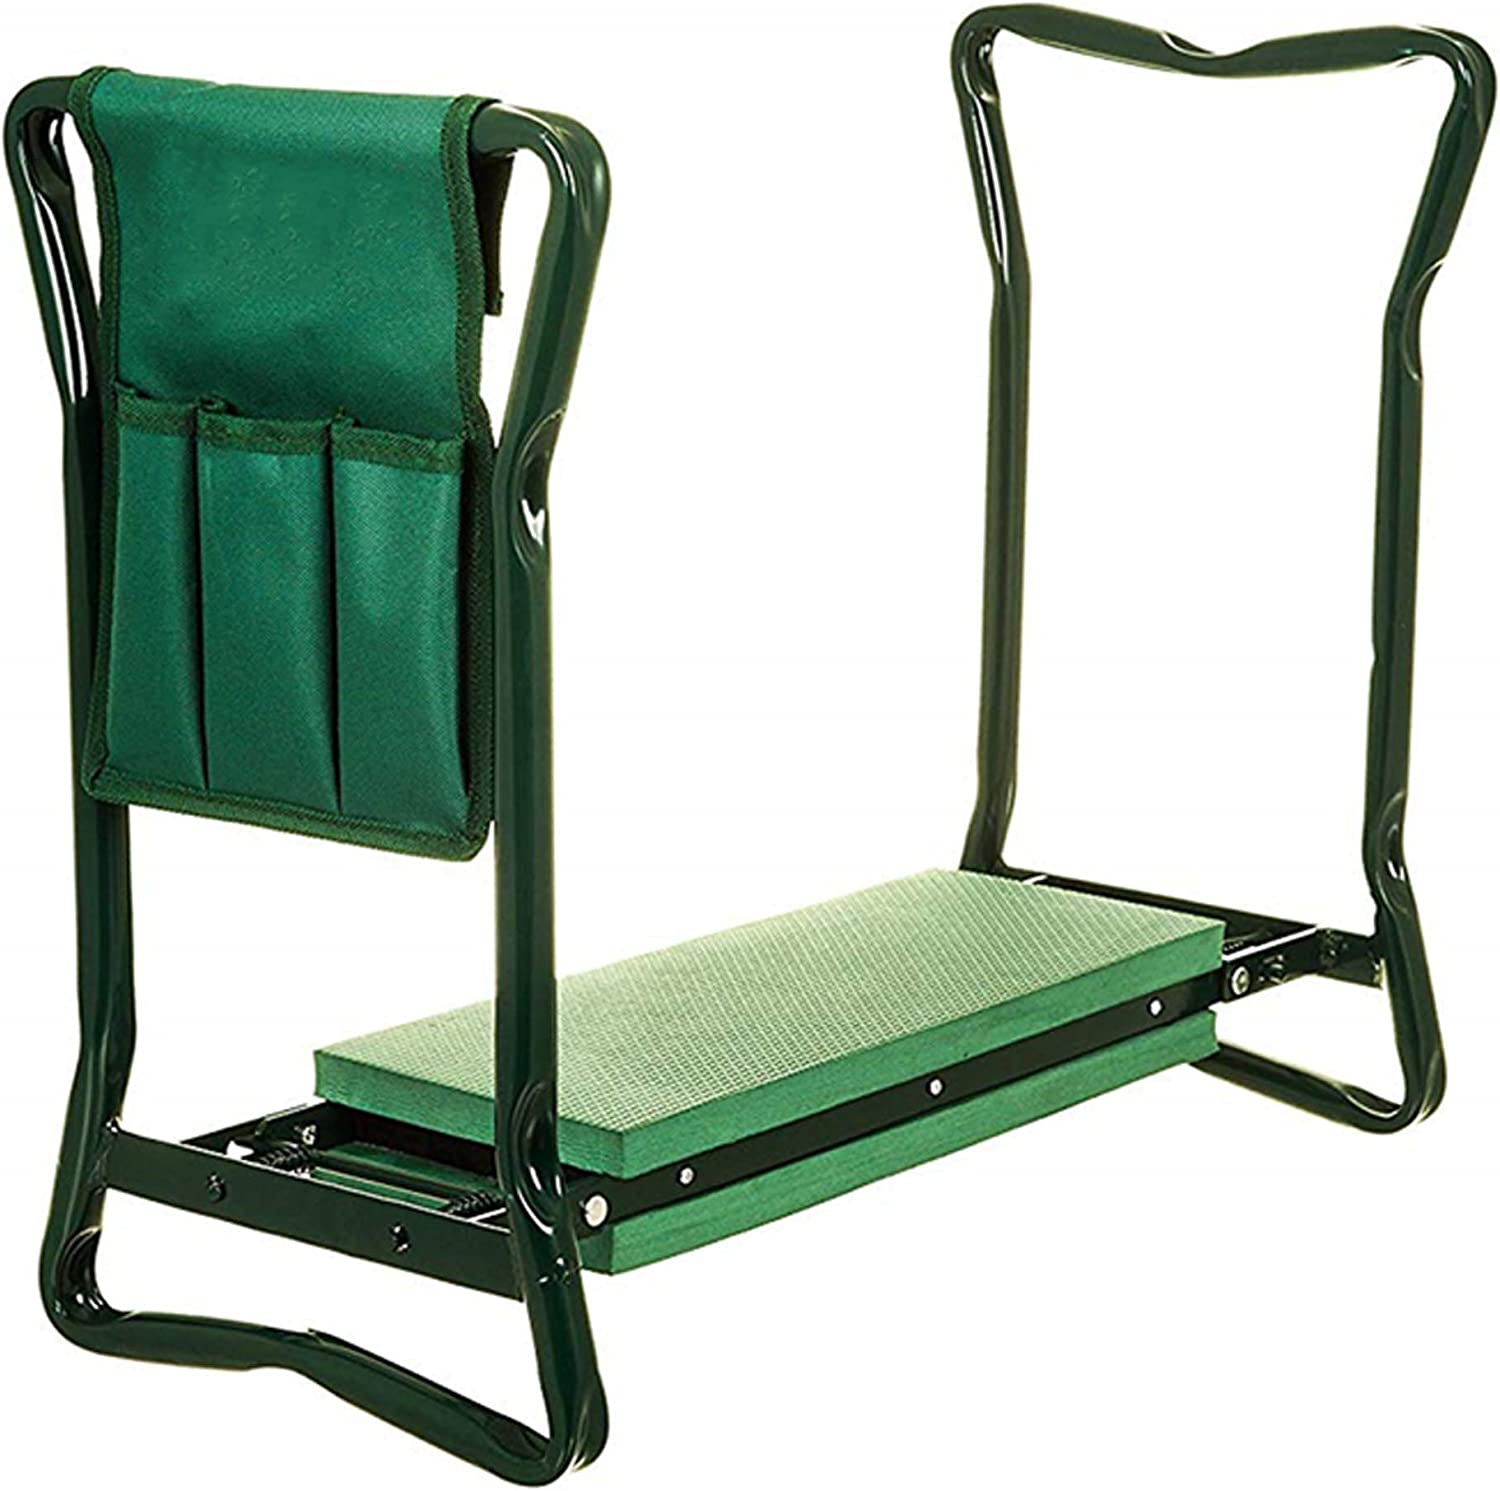 Easy To Carry And Foldaway Humlin Garden Kneeler Portable Folding Seat 2 in 1 With Tool Bag